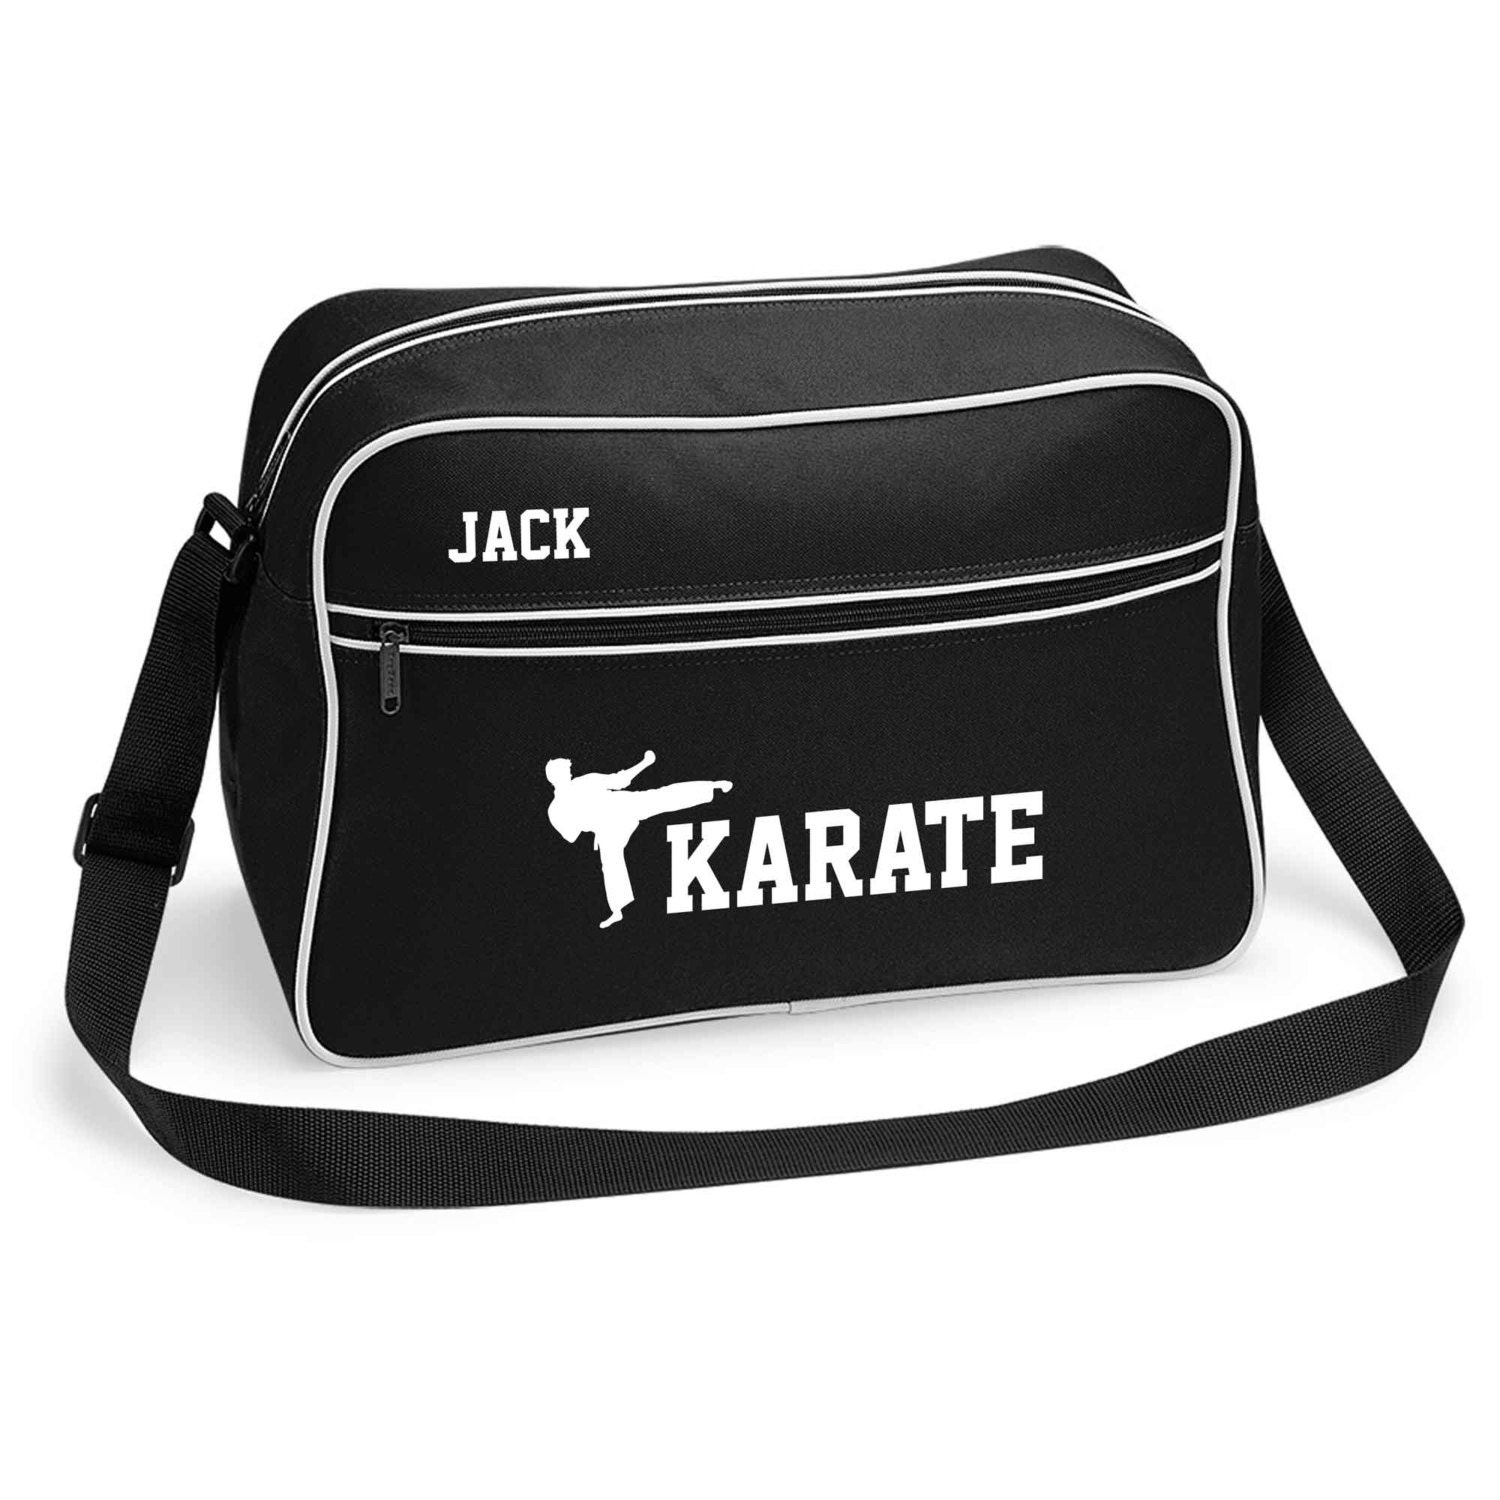 Personalised Retro Sports Bag Karate by Inspired Creative Design